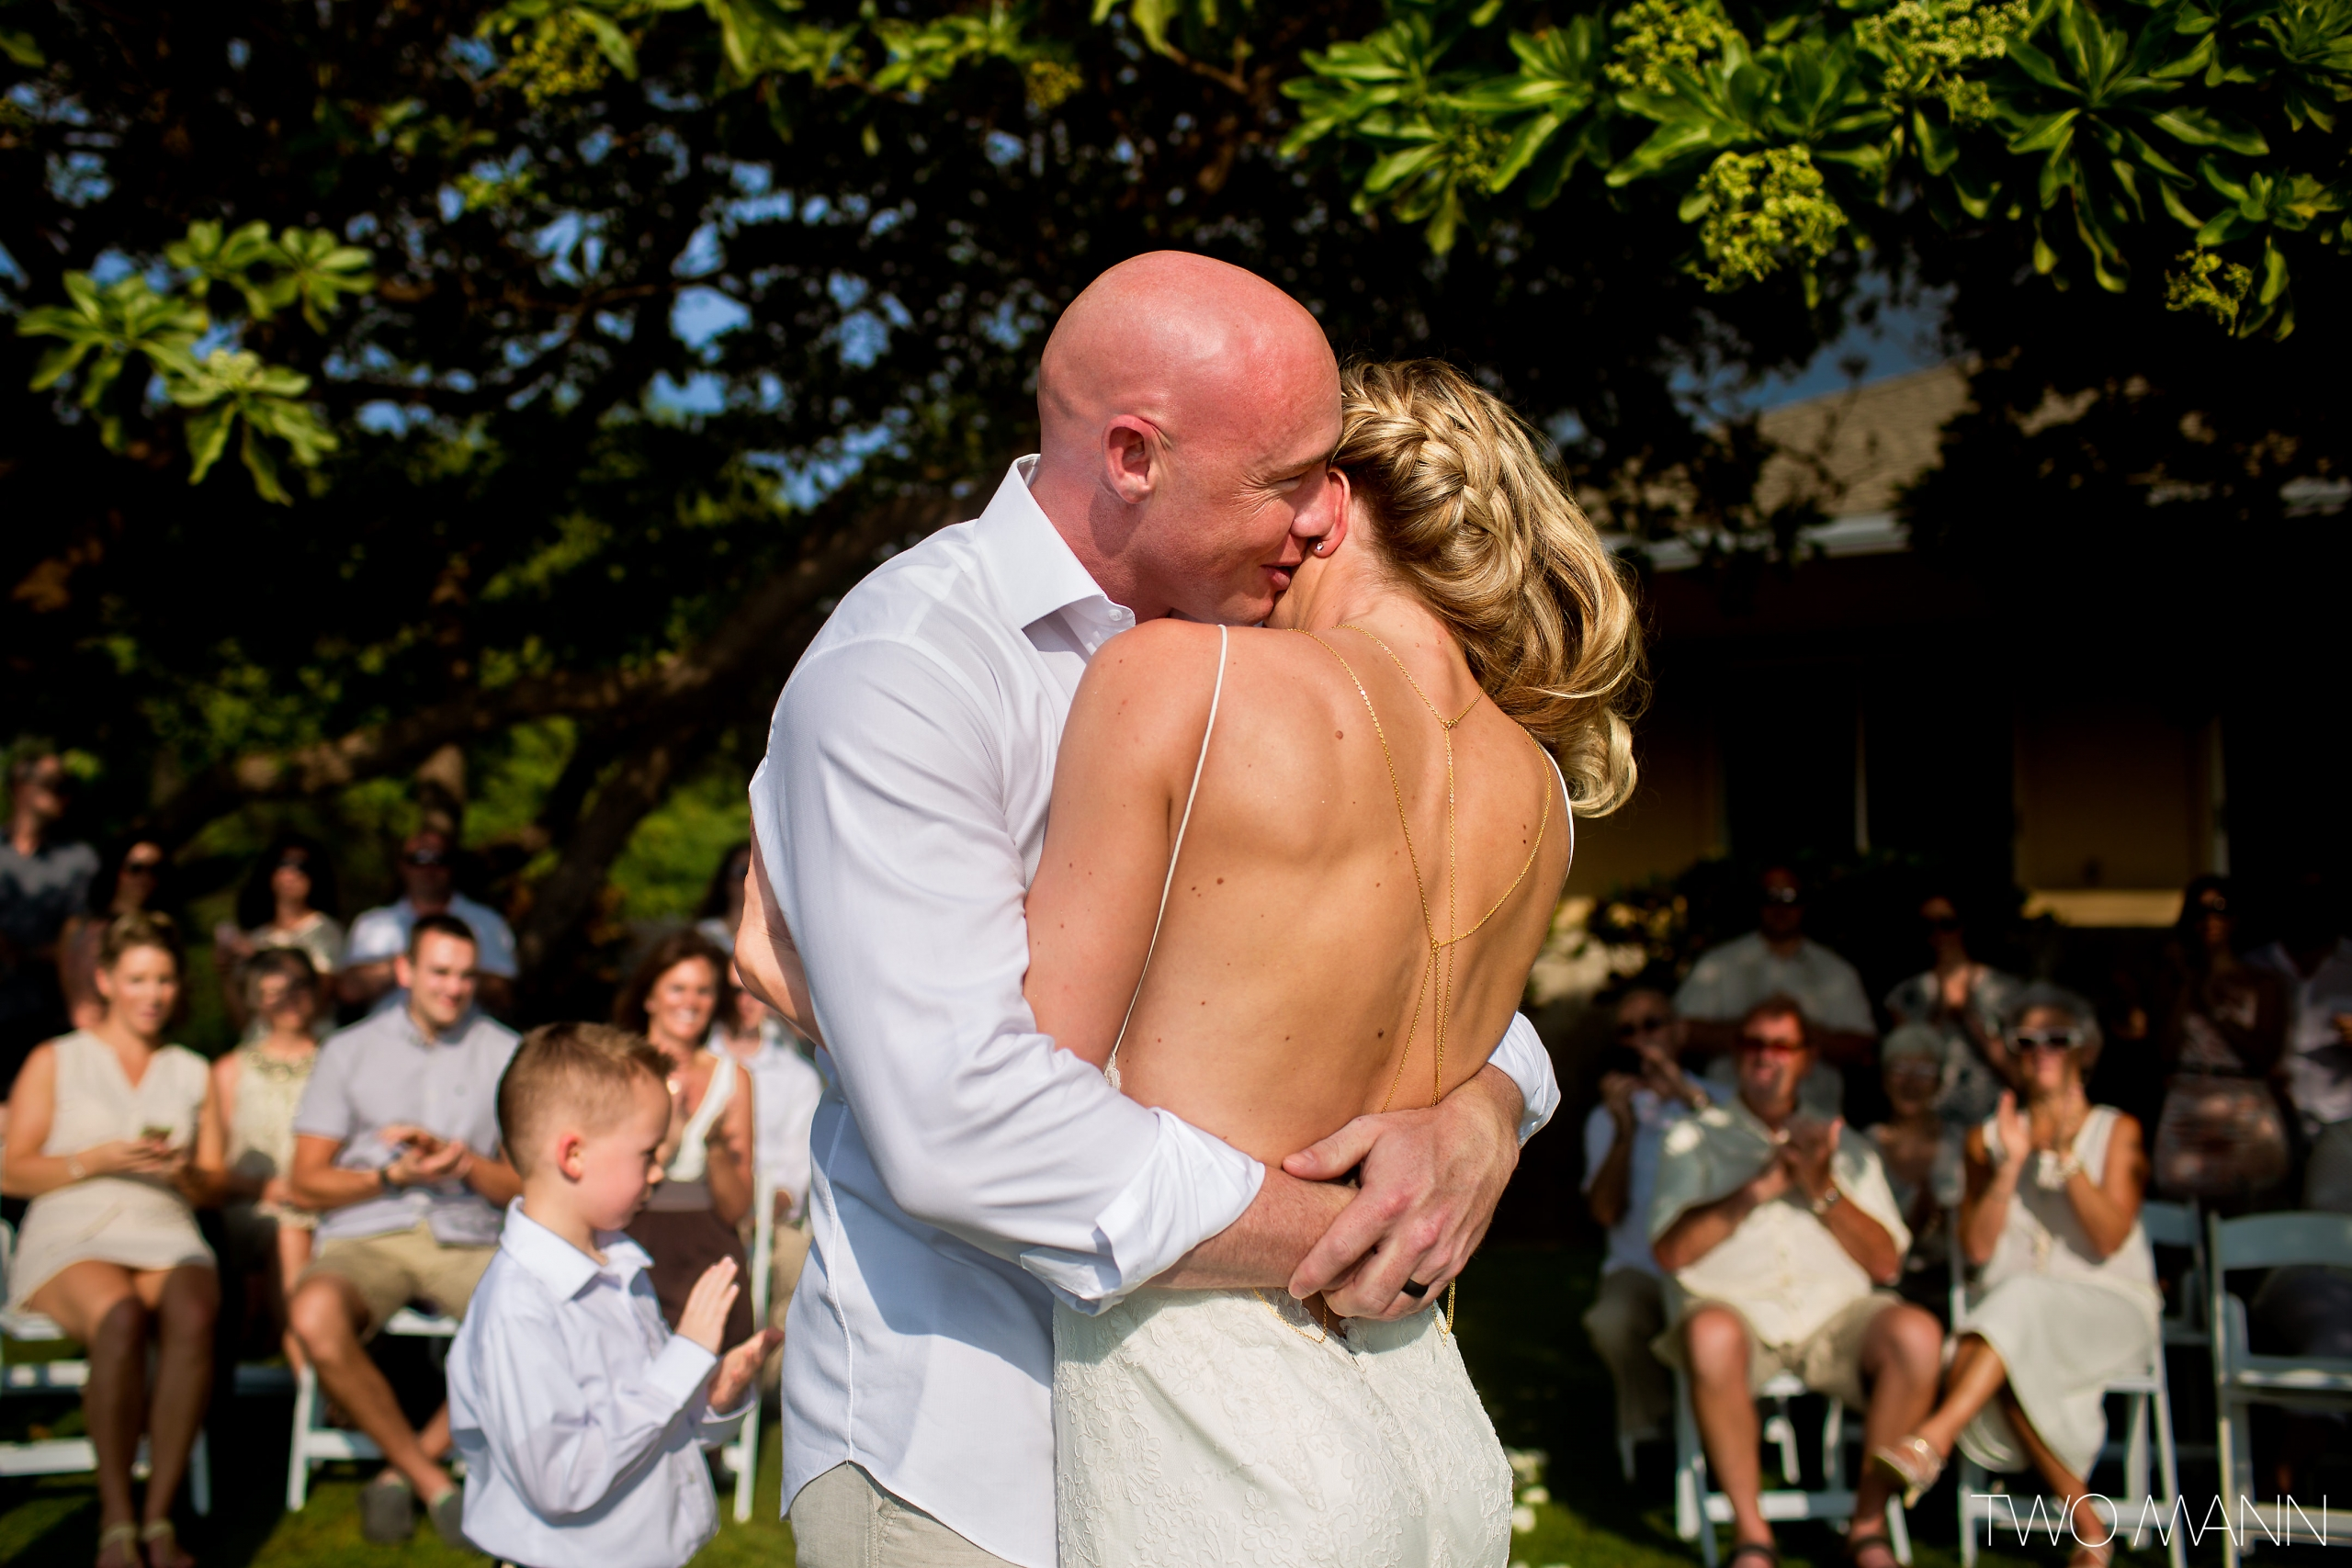 a groom embracing his-bride at a wedding ceremony in Maui